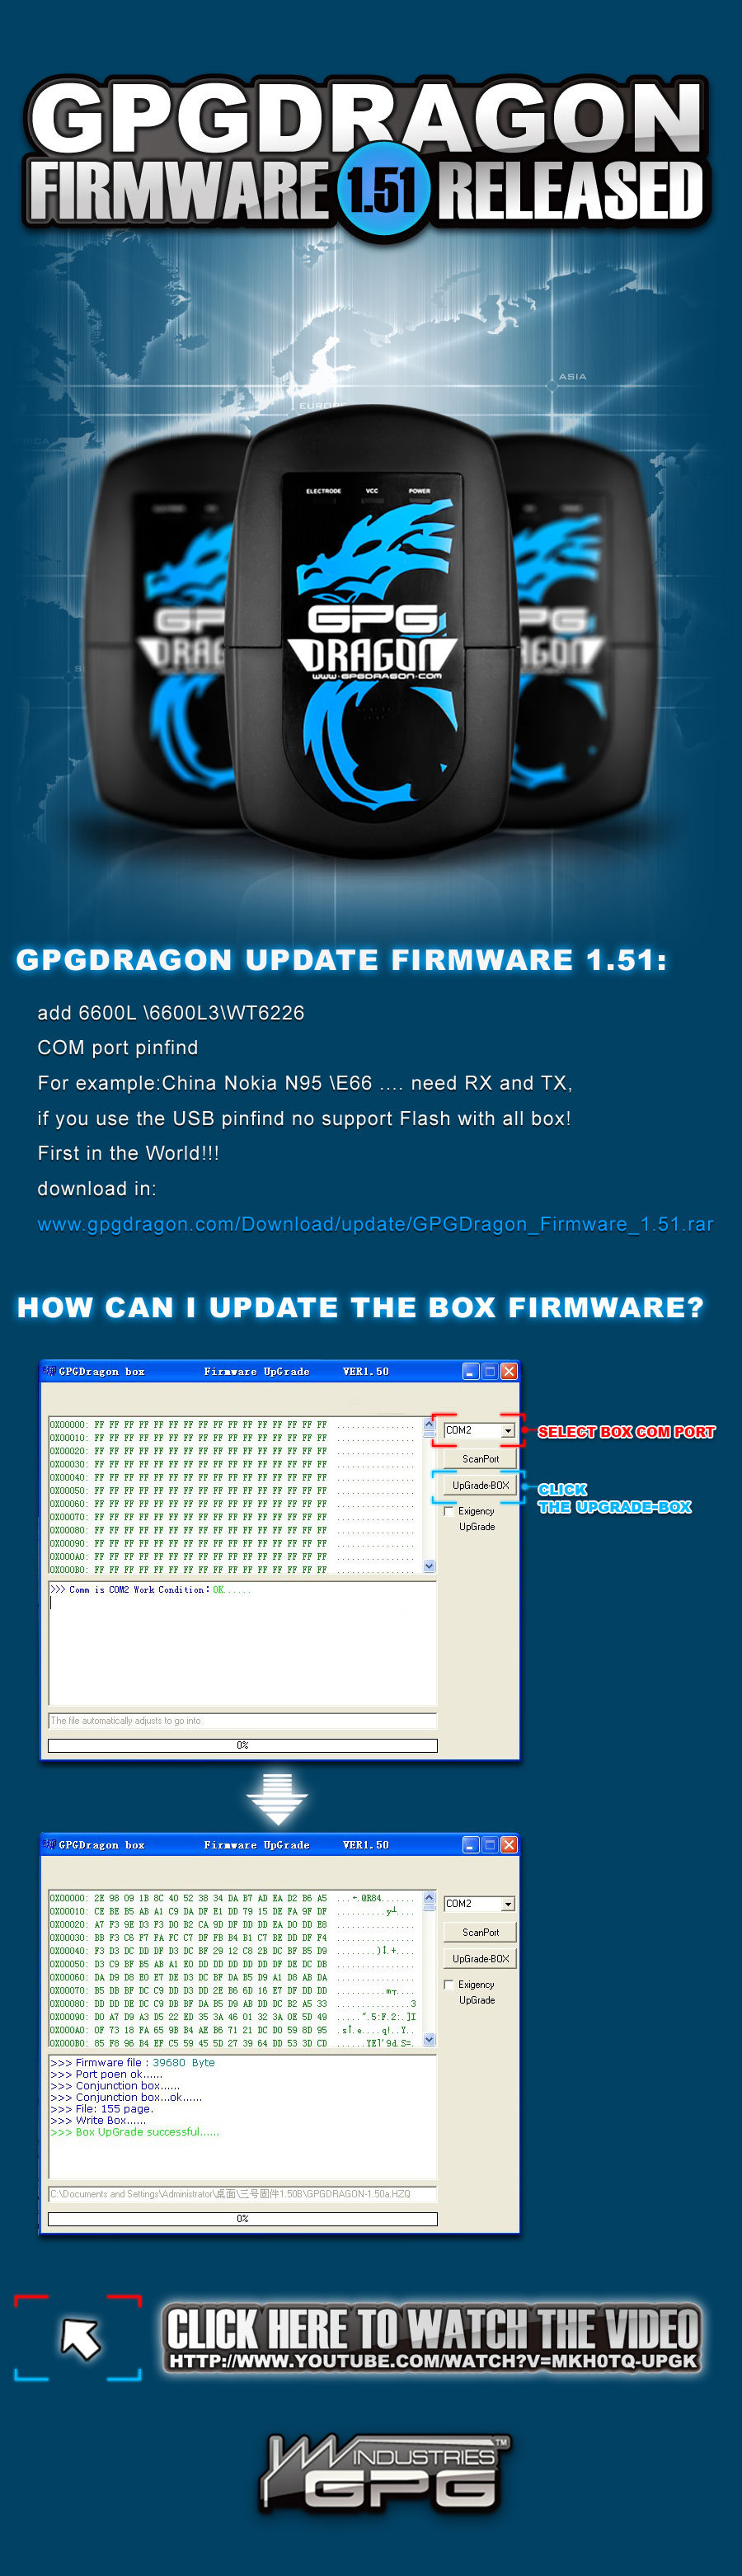 GPGDragon Firmware 151 Released